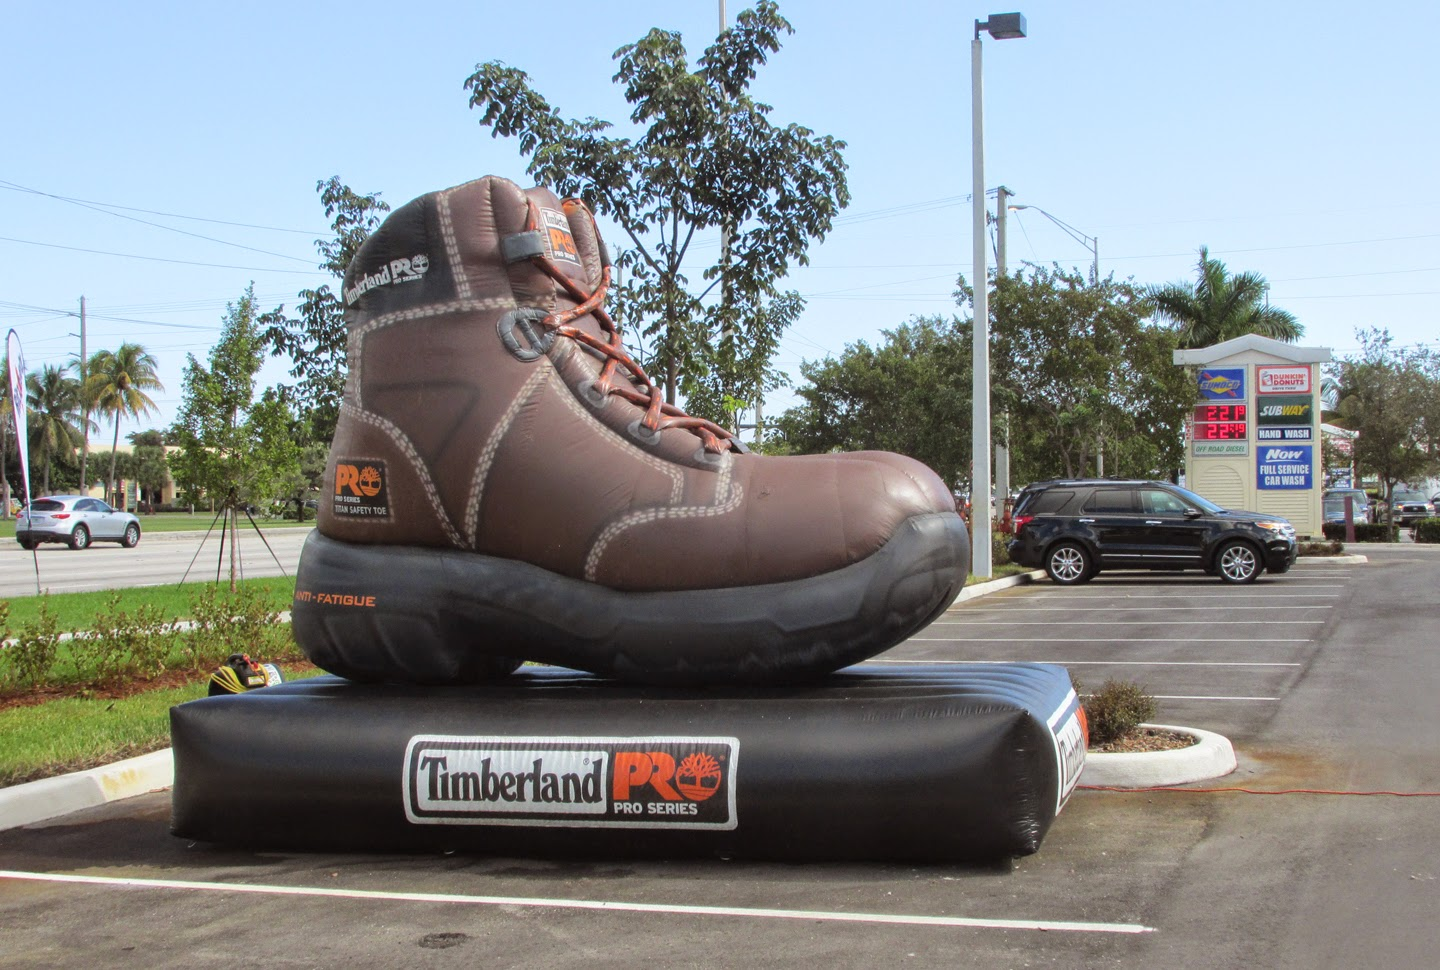 An extra large Timberland Pro series with the Titan Safety Toe, Pompano  Beach, Florida